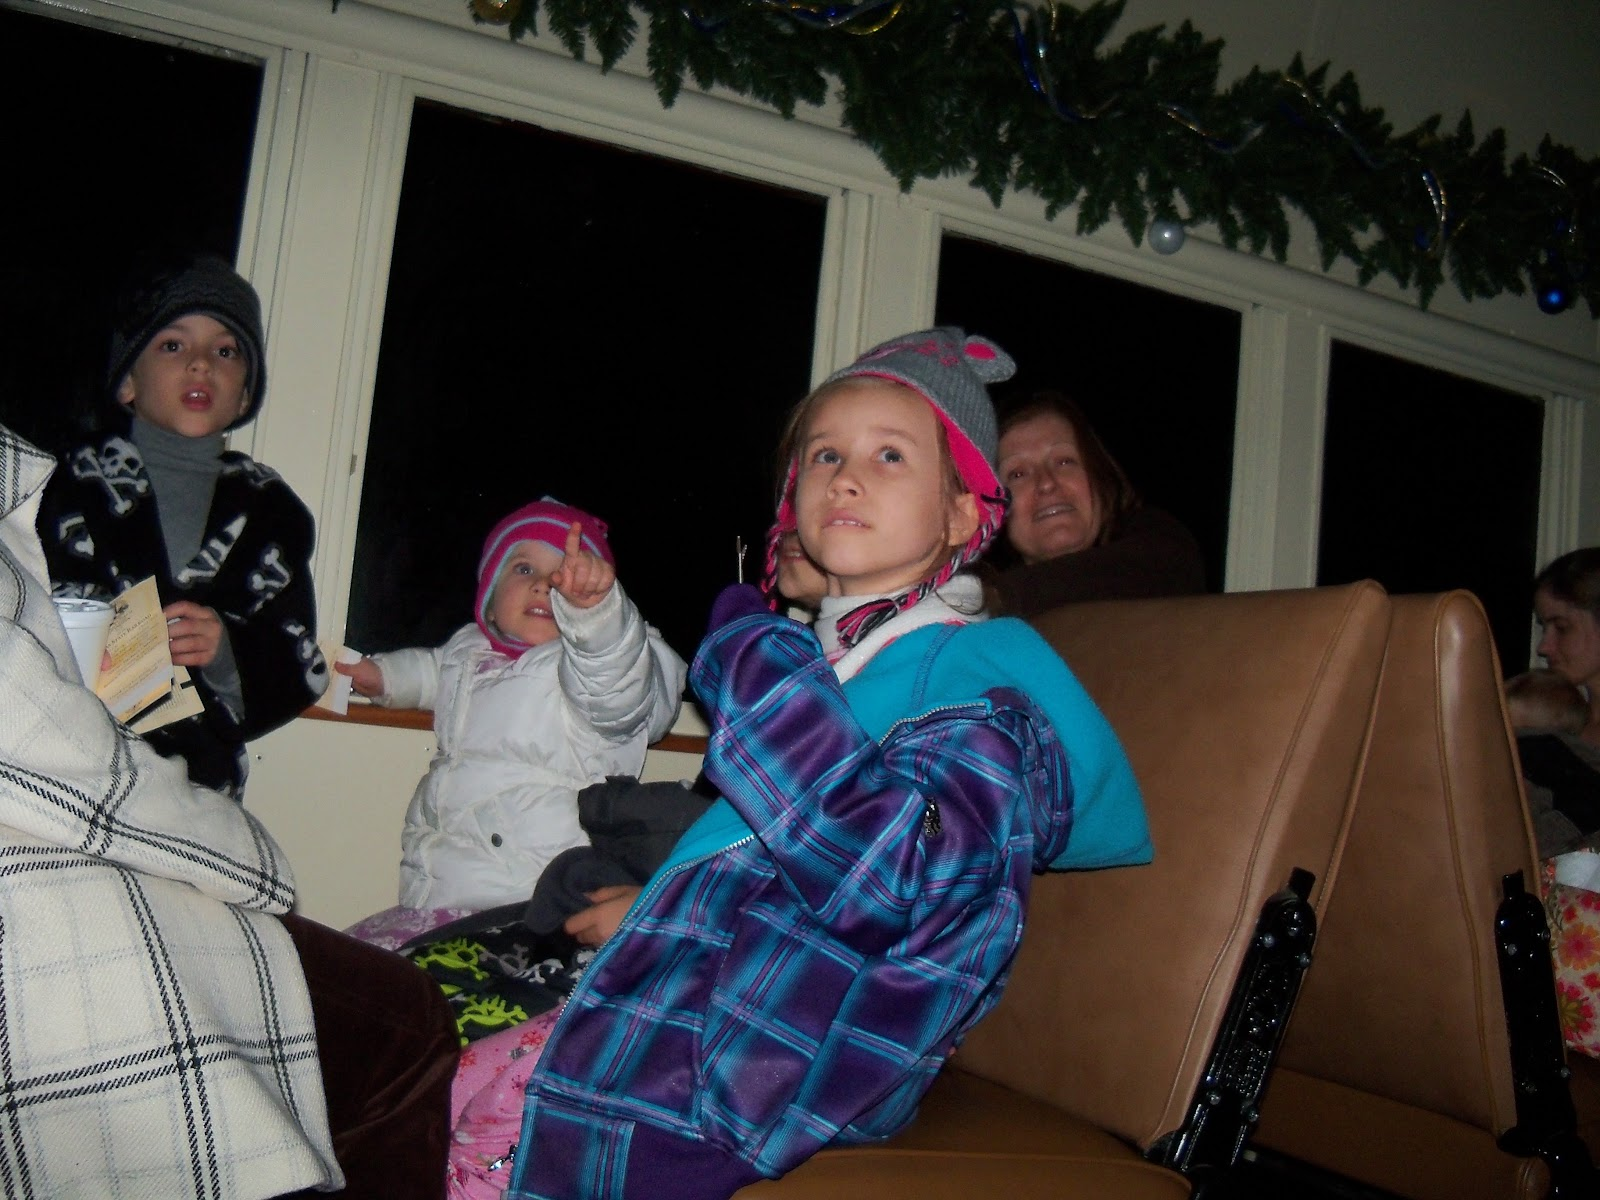 Polar Express Christmas Train 2011 - 115_0959.JPG